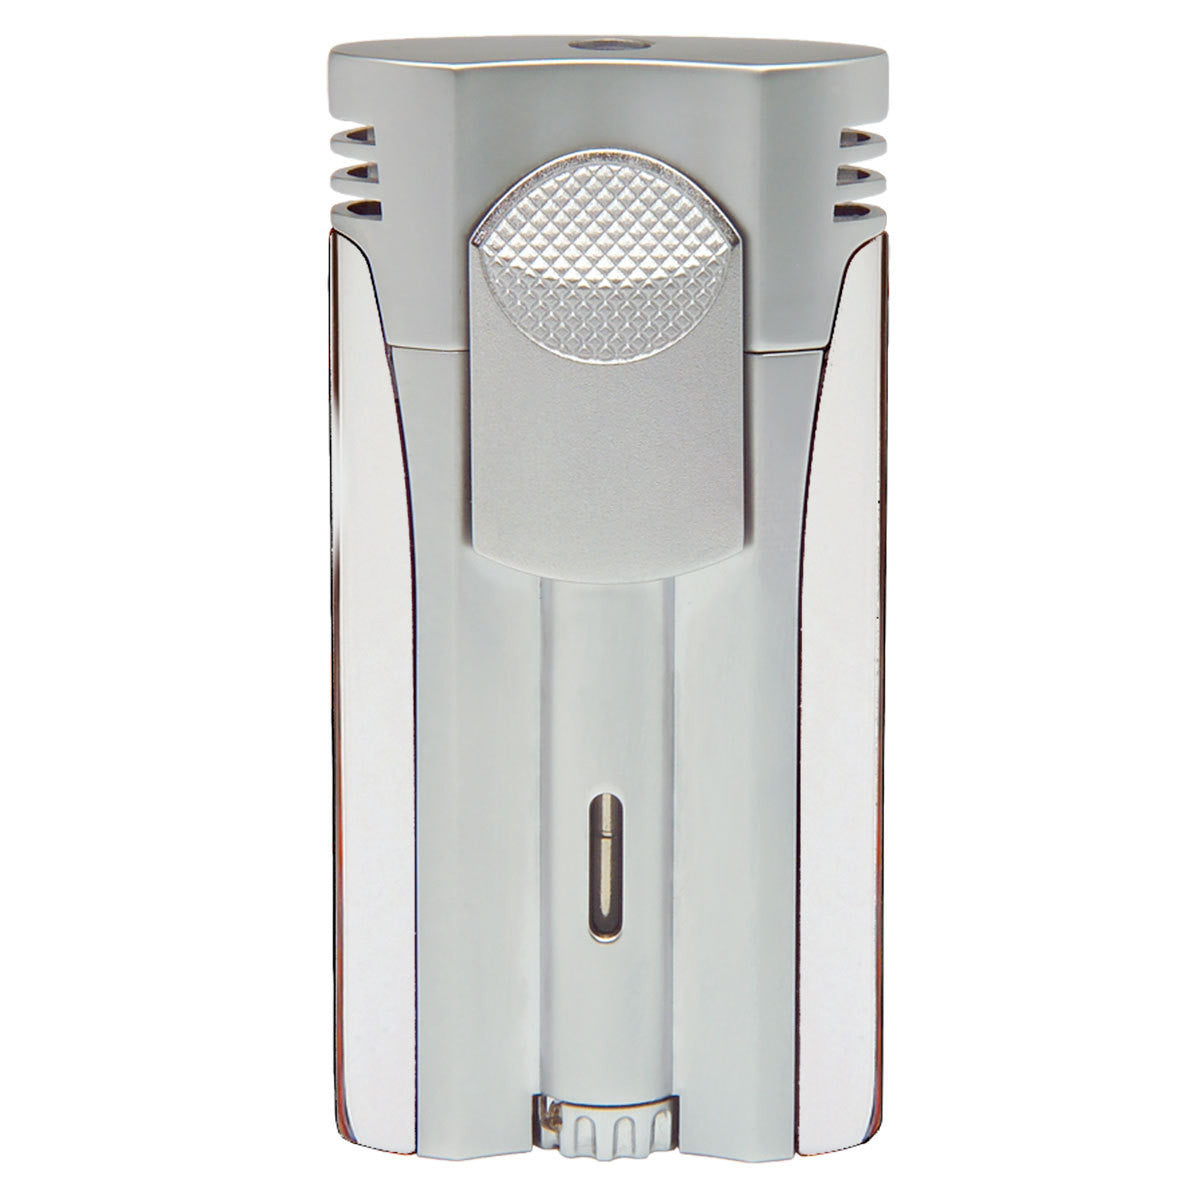 Xikar NXT Cigar Lighter Chrome - Humidors Wholesaler